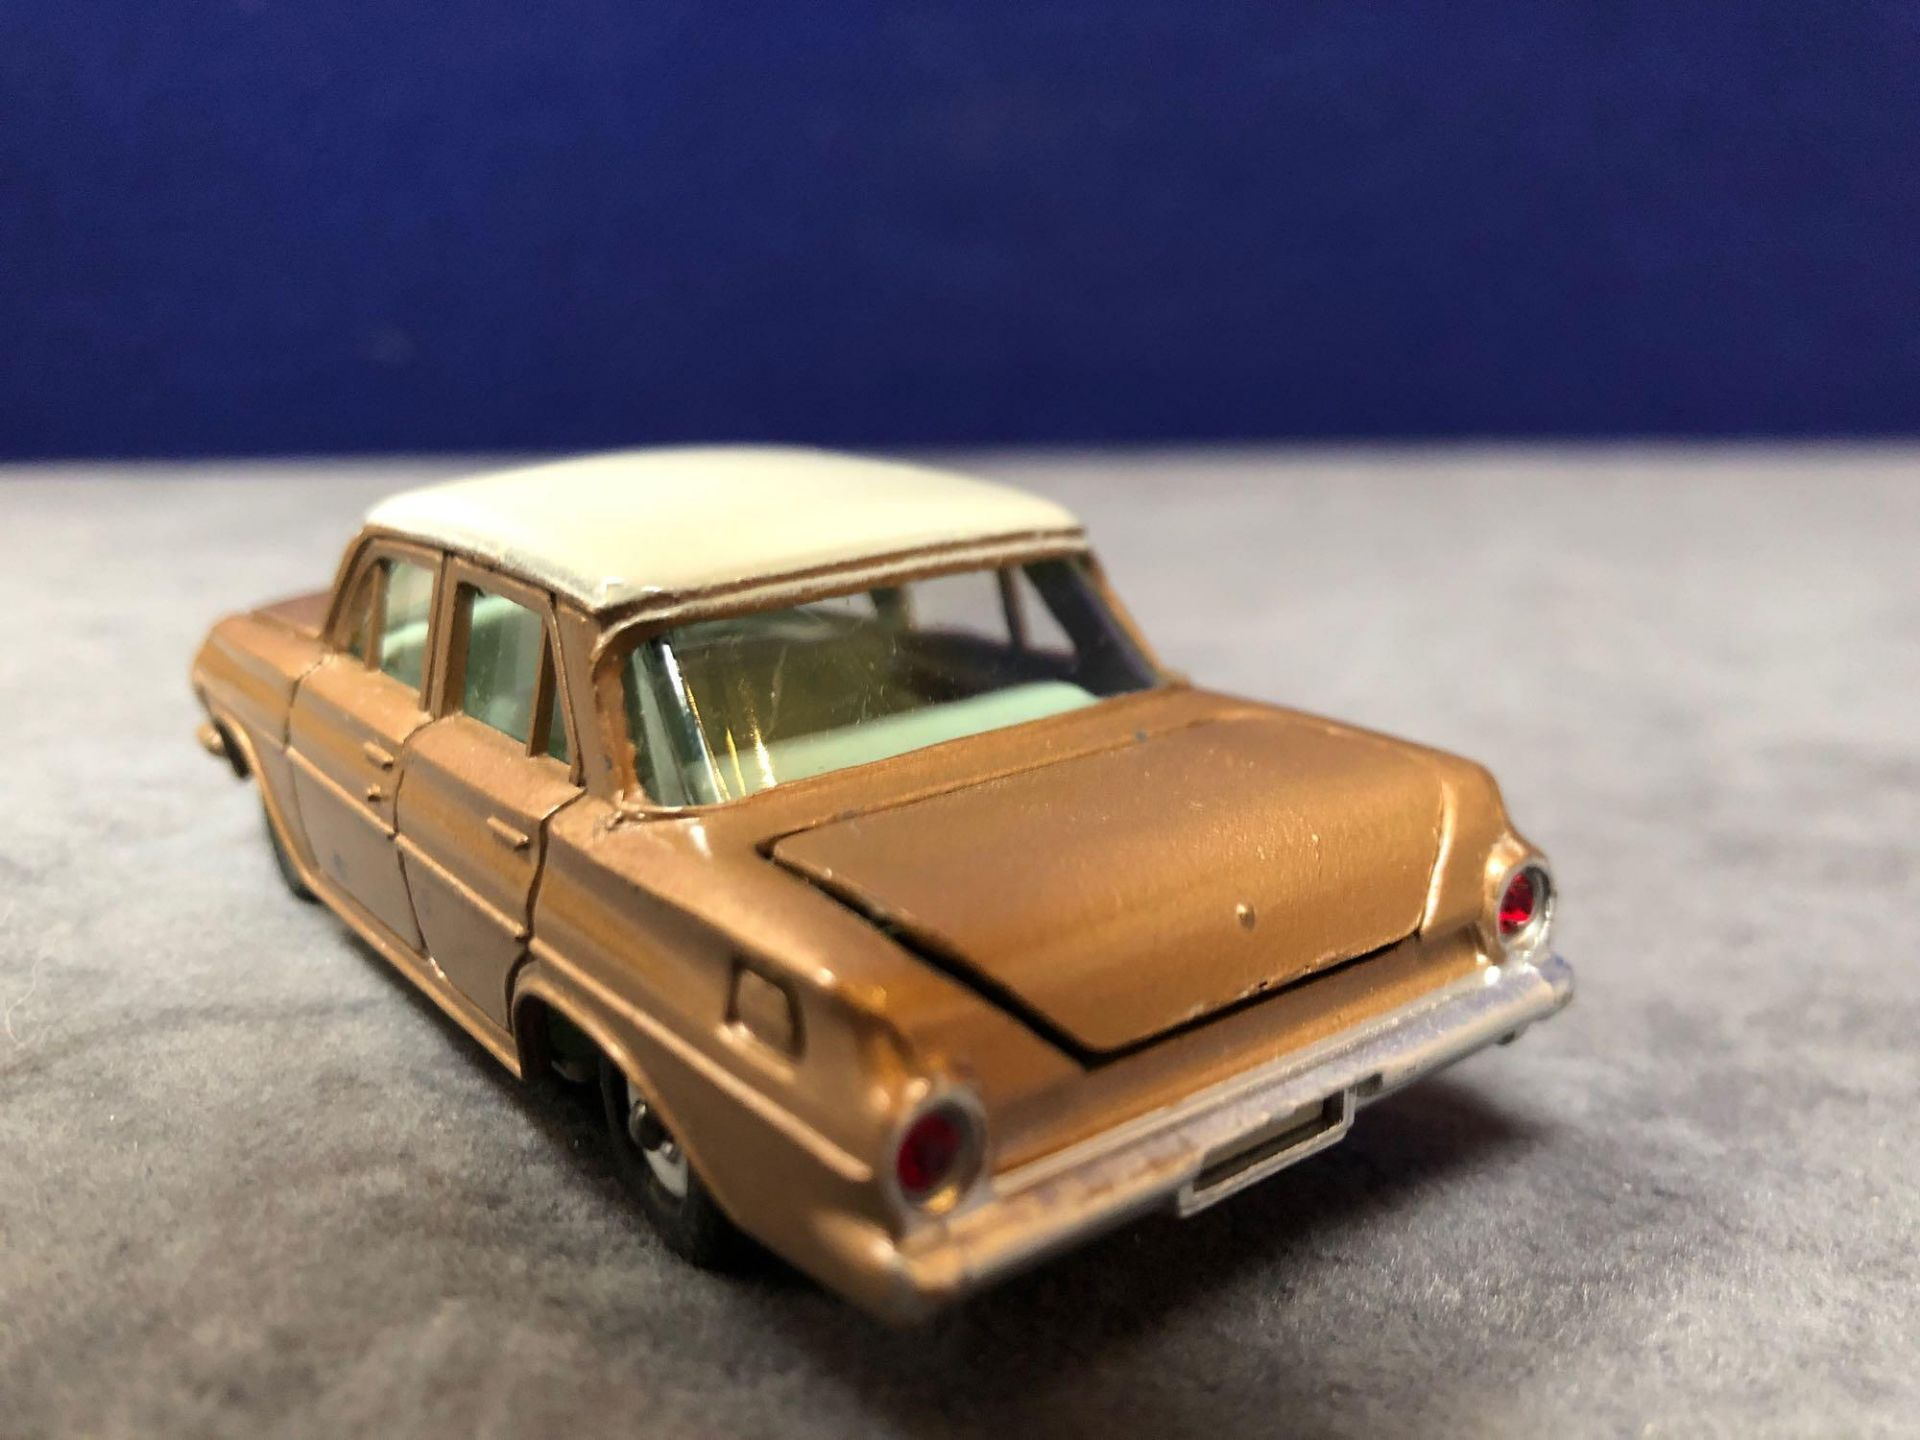 Dinky #196 Holden Special Sedan Bronze/White Or Turquoise/White - Jewelled Headlights (No - Image 3 of 4